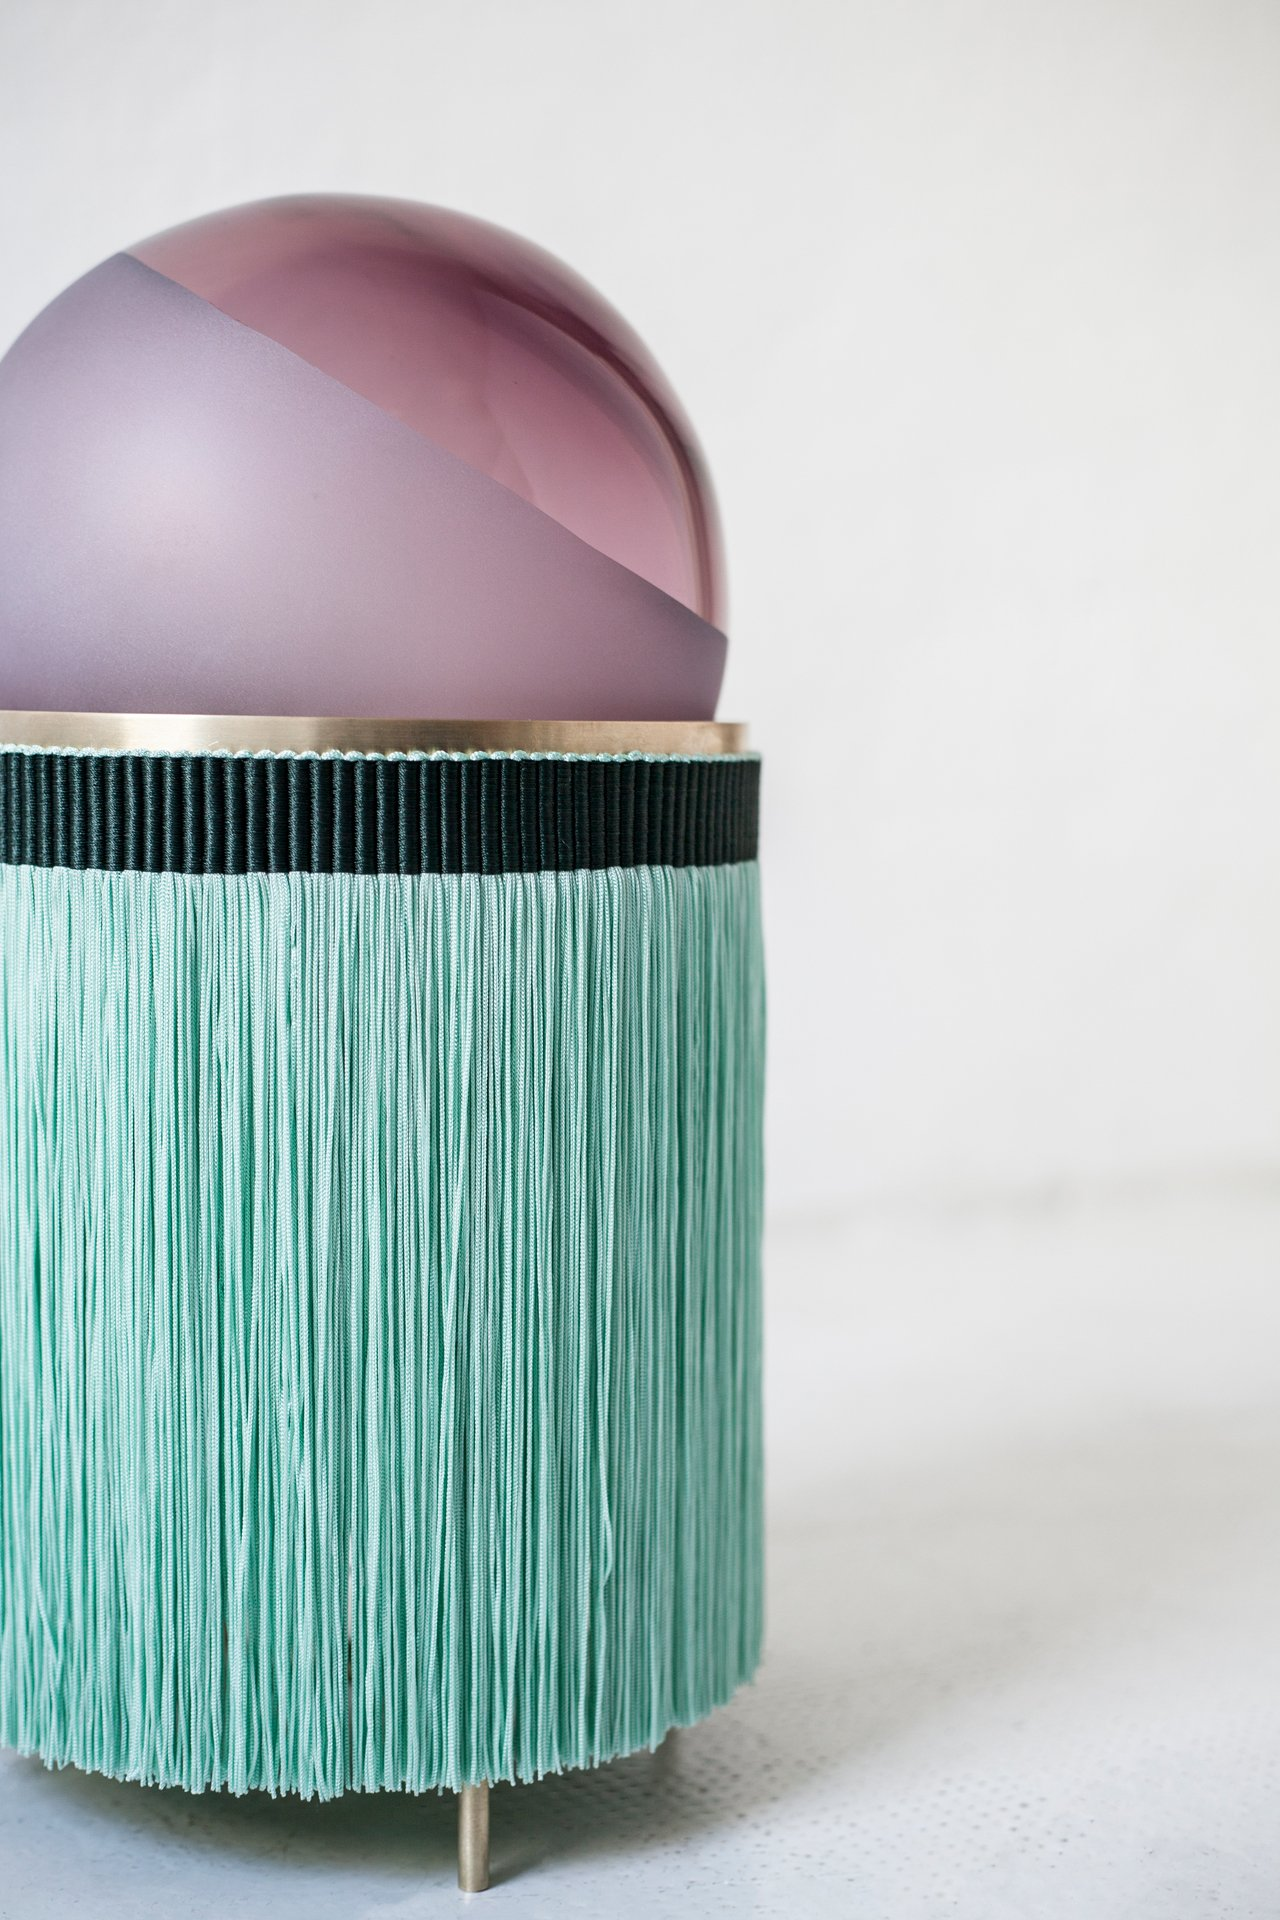 Normanna, a new collection of lamps designed by VI + M studio for Purho.